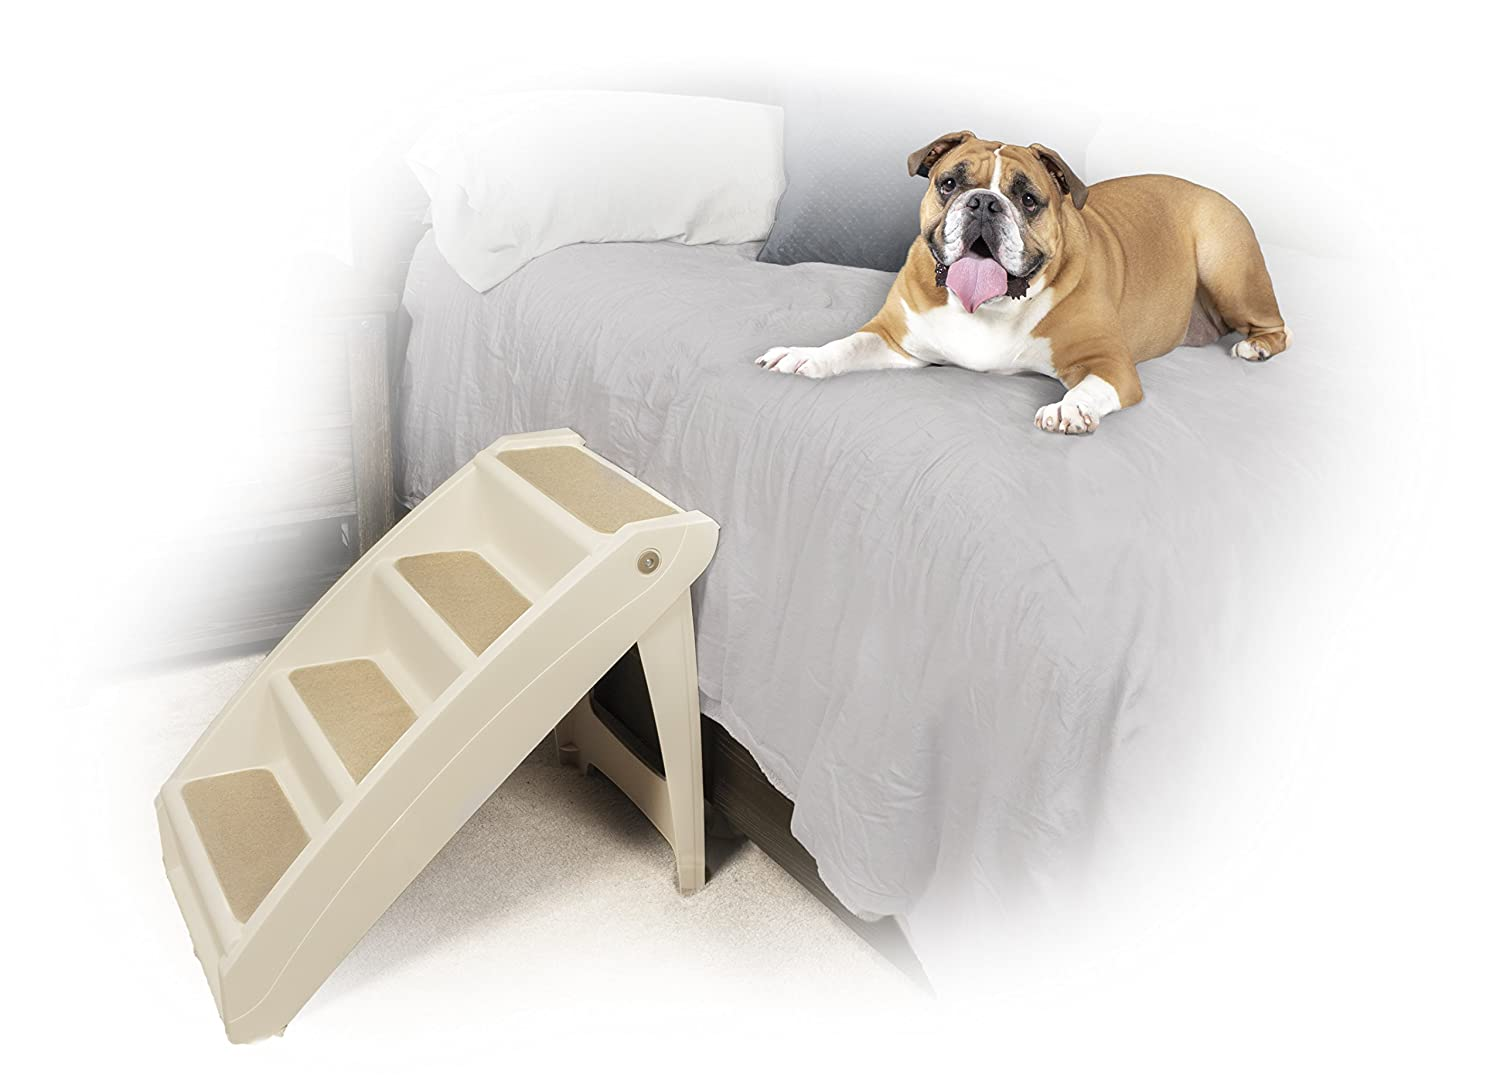 Plus XLarge PetSafe Solvit PupSTEP Plus Pet Stairs, XLarge, Foldable Steps for Dogs and Cats, Best for Medium to Large Pets